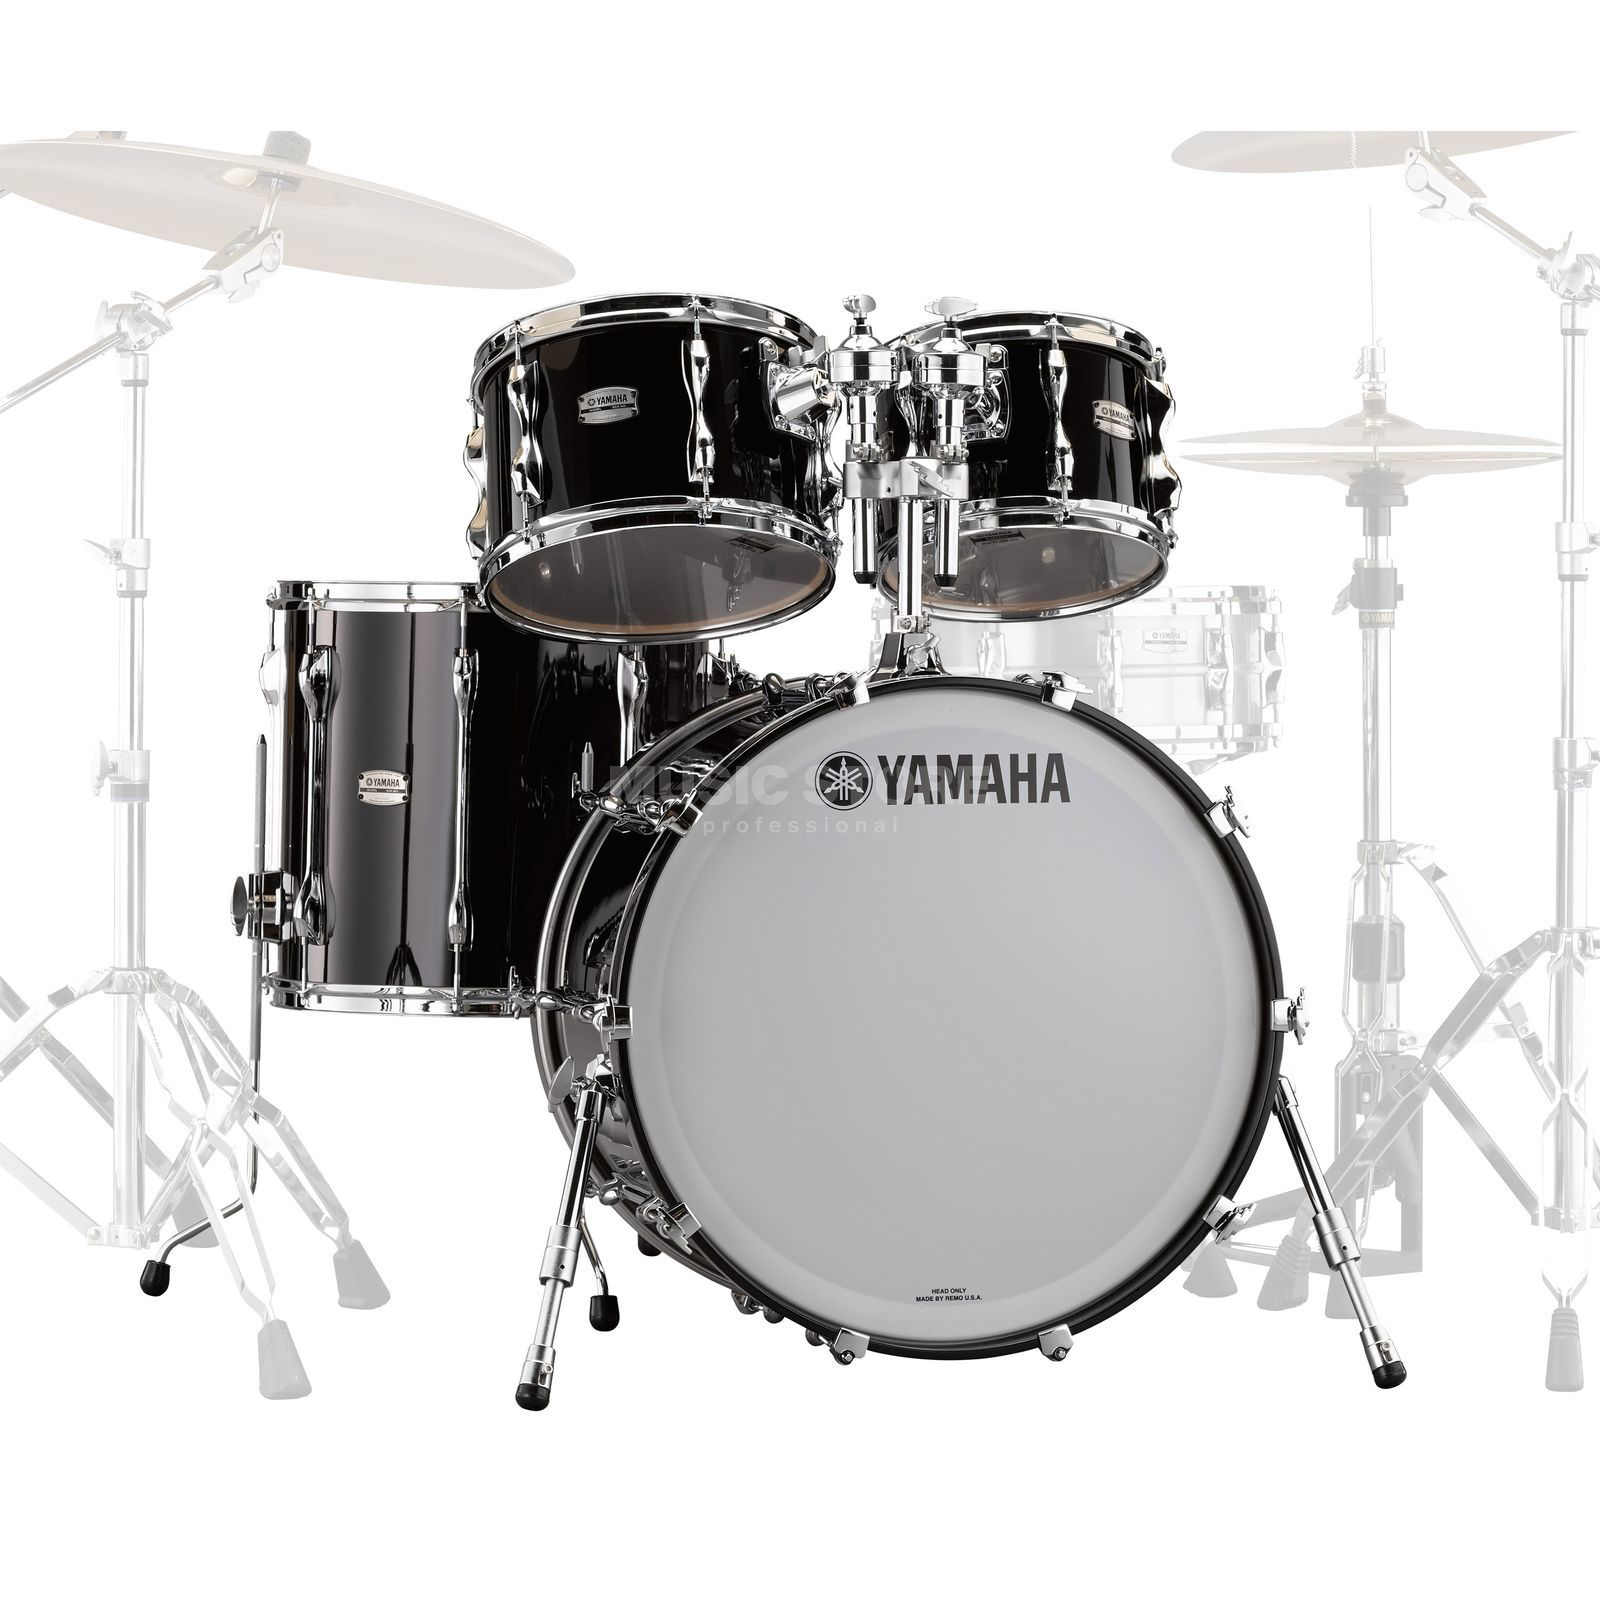 YAMAHA Recording Custom Studio - Set Product Image